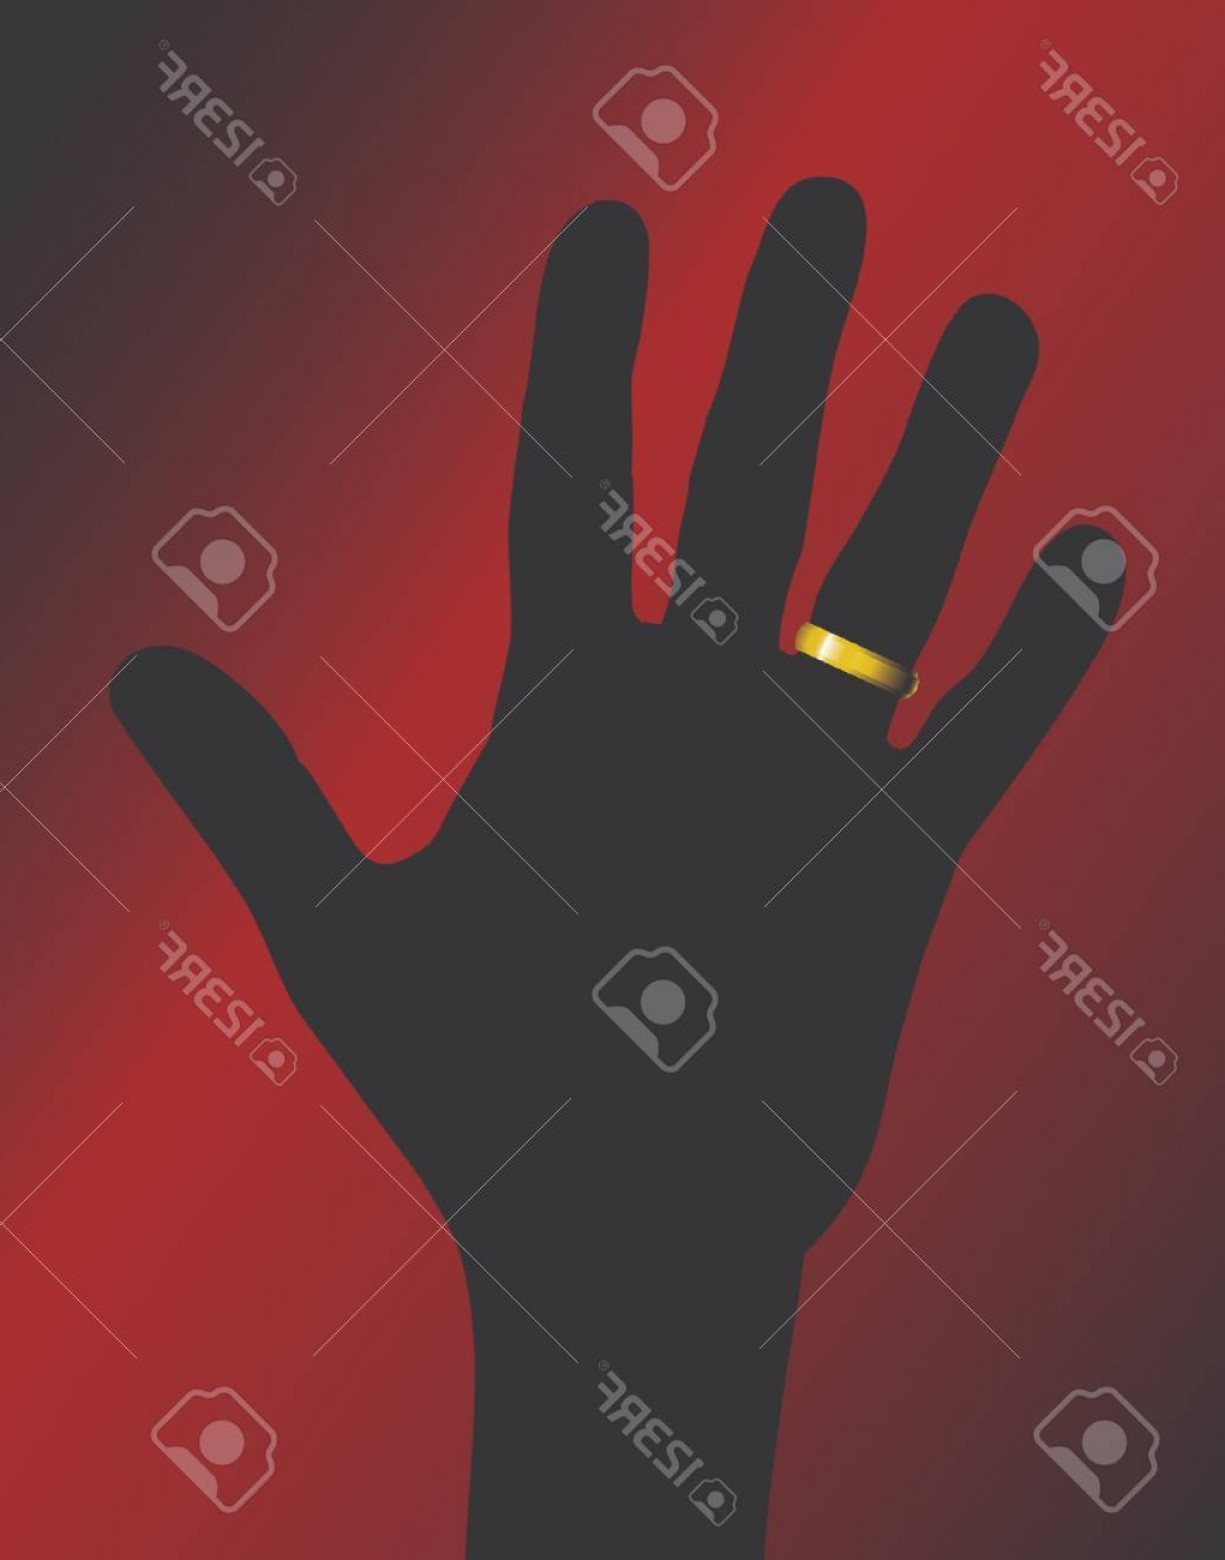 Hand With Ring Silhouette Vector: Photovector Illustration Of Gold Ring On Hand Silhouette